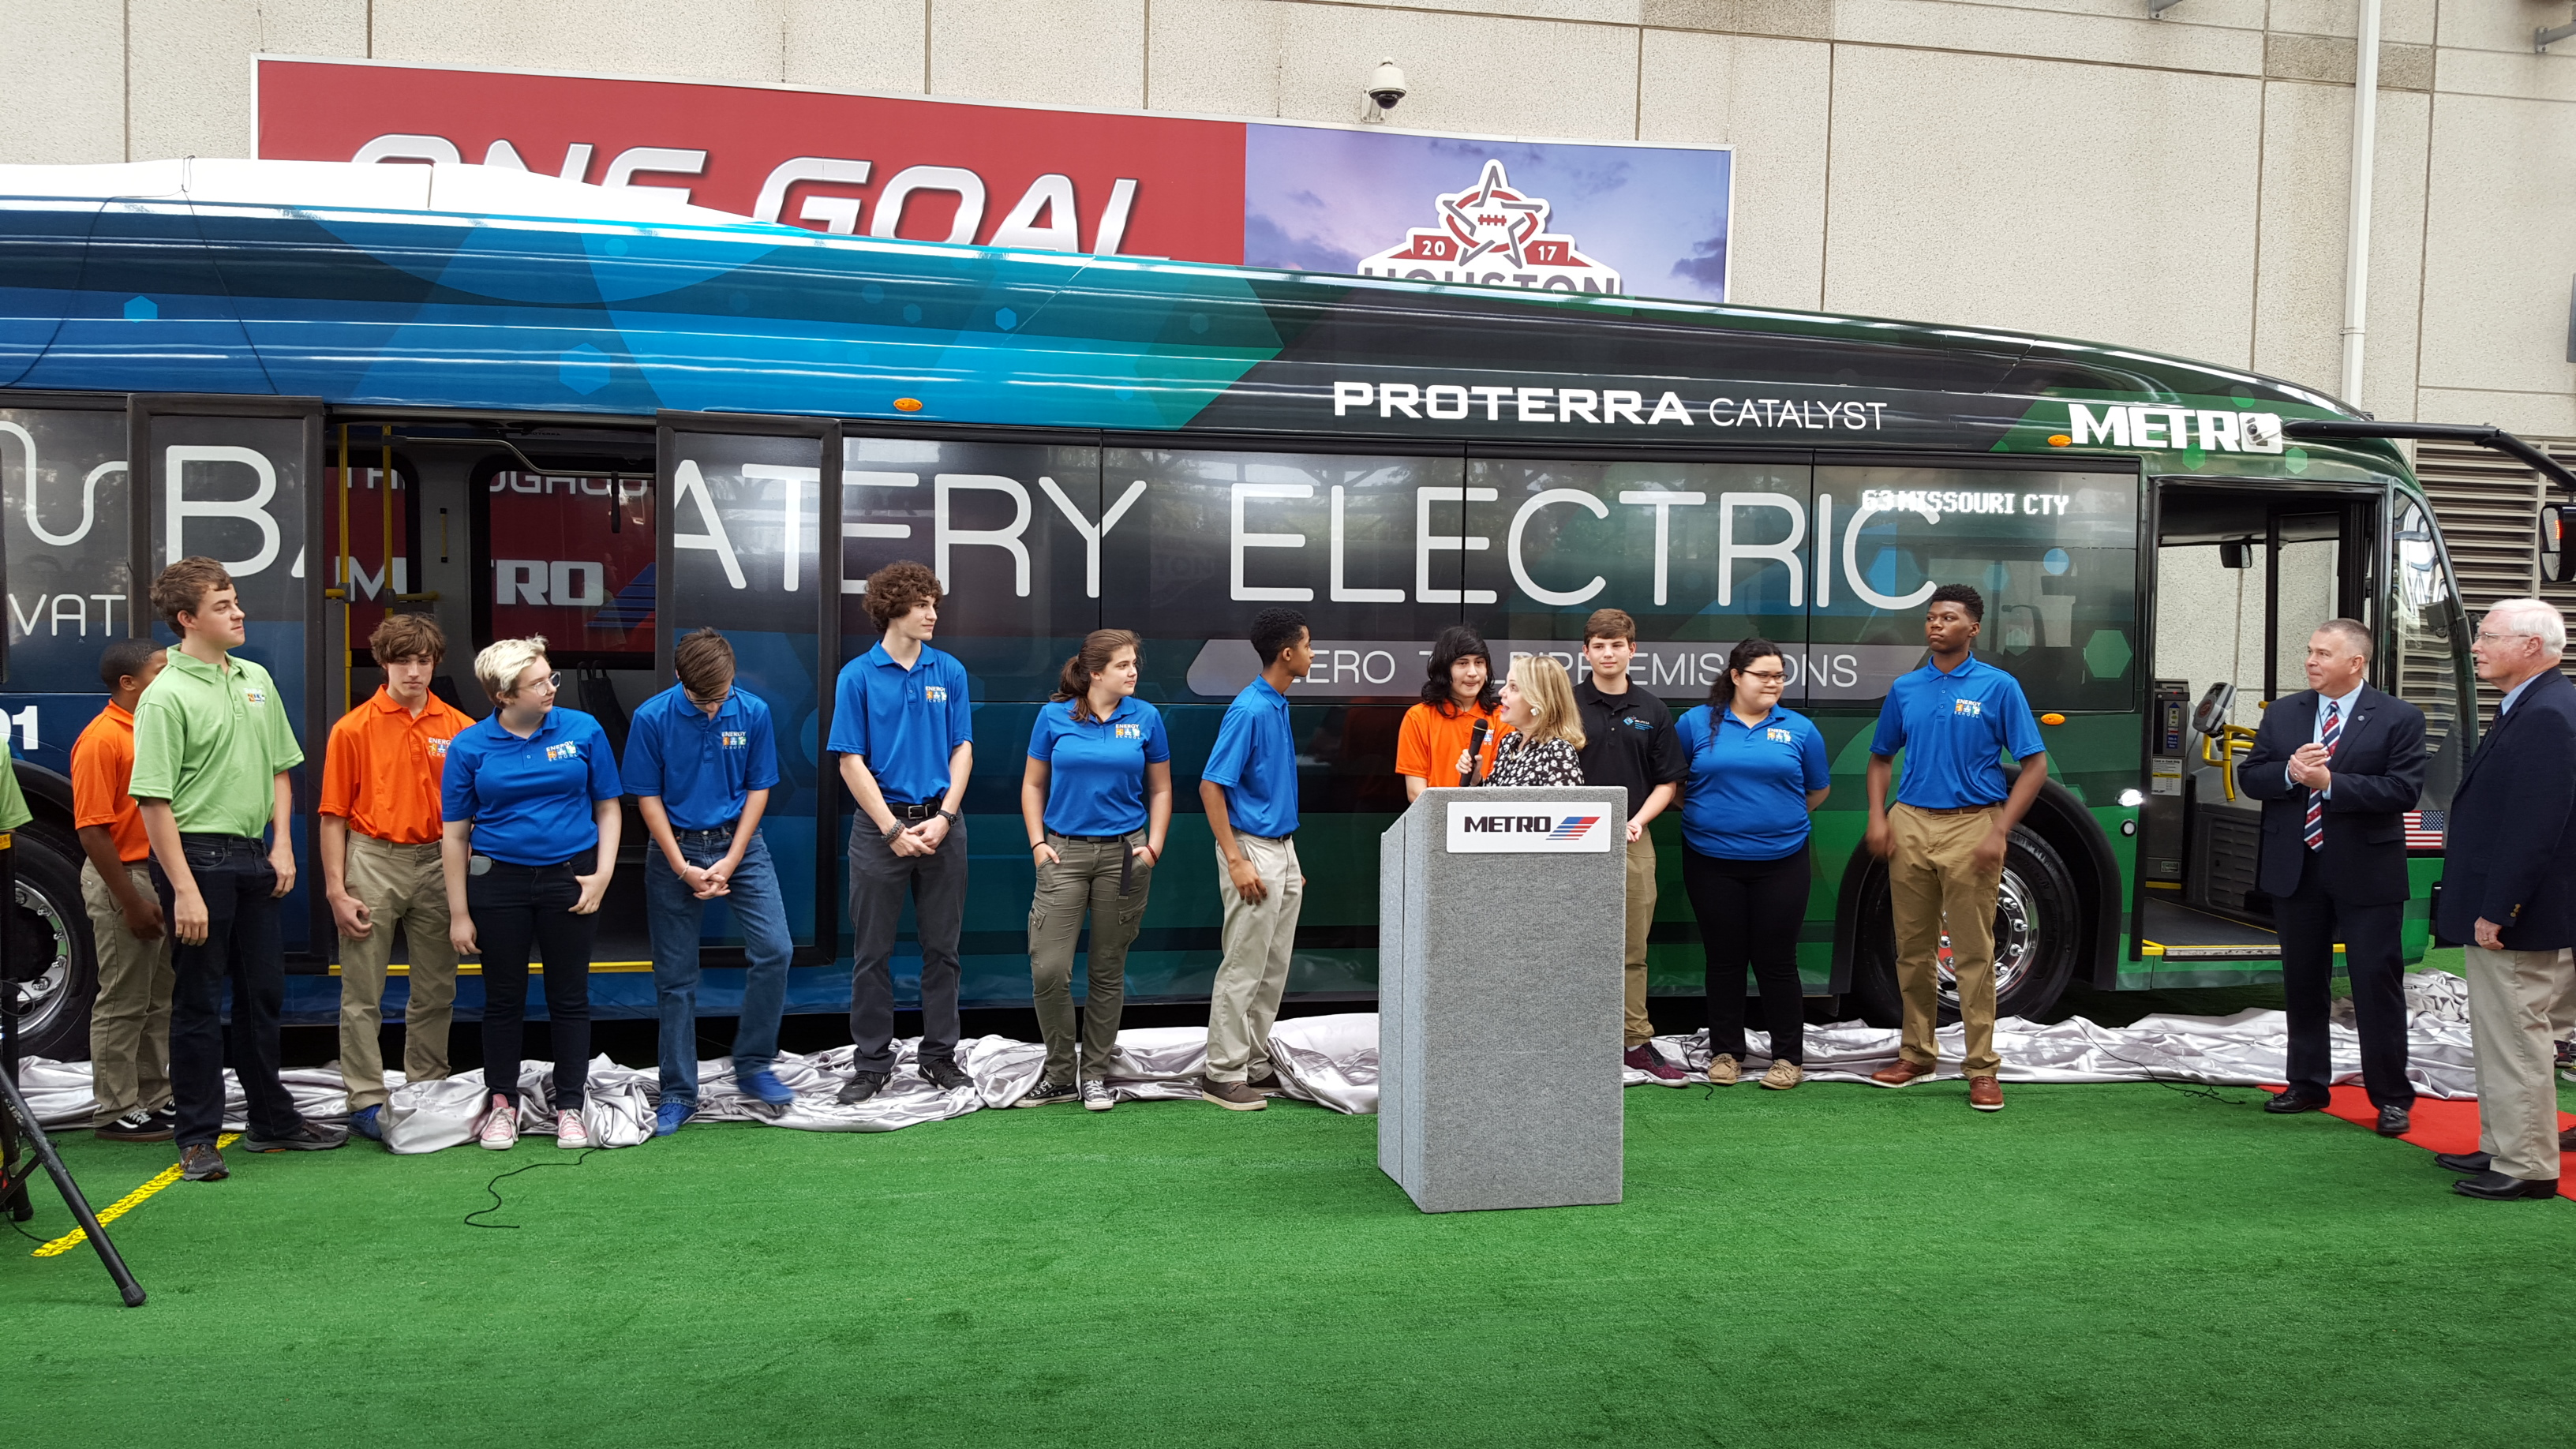 New Metro Electric Bus Starts Rolling This Weekend – Houston Public